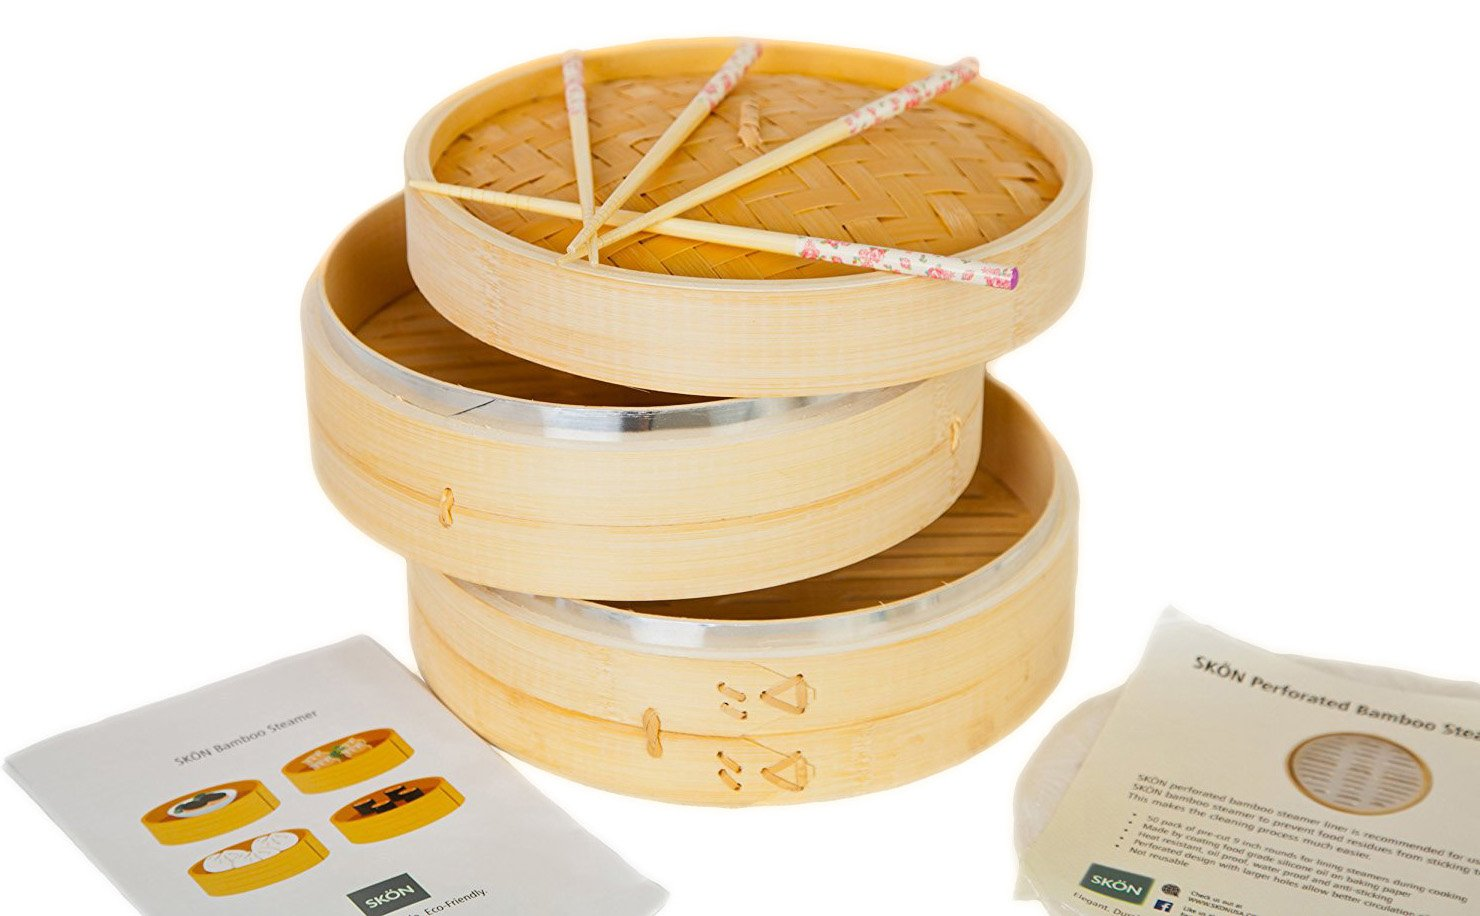 New Updated with Steel Rings! SKÖN Premium Bamboo Steamer + 2 pairs of Reusable Chopsticks + 50 pcs Perforated Liners, Silicone Coated by SKÖN (Image #7)